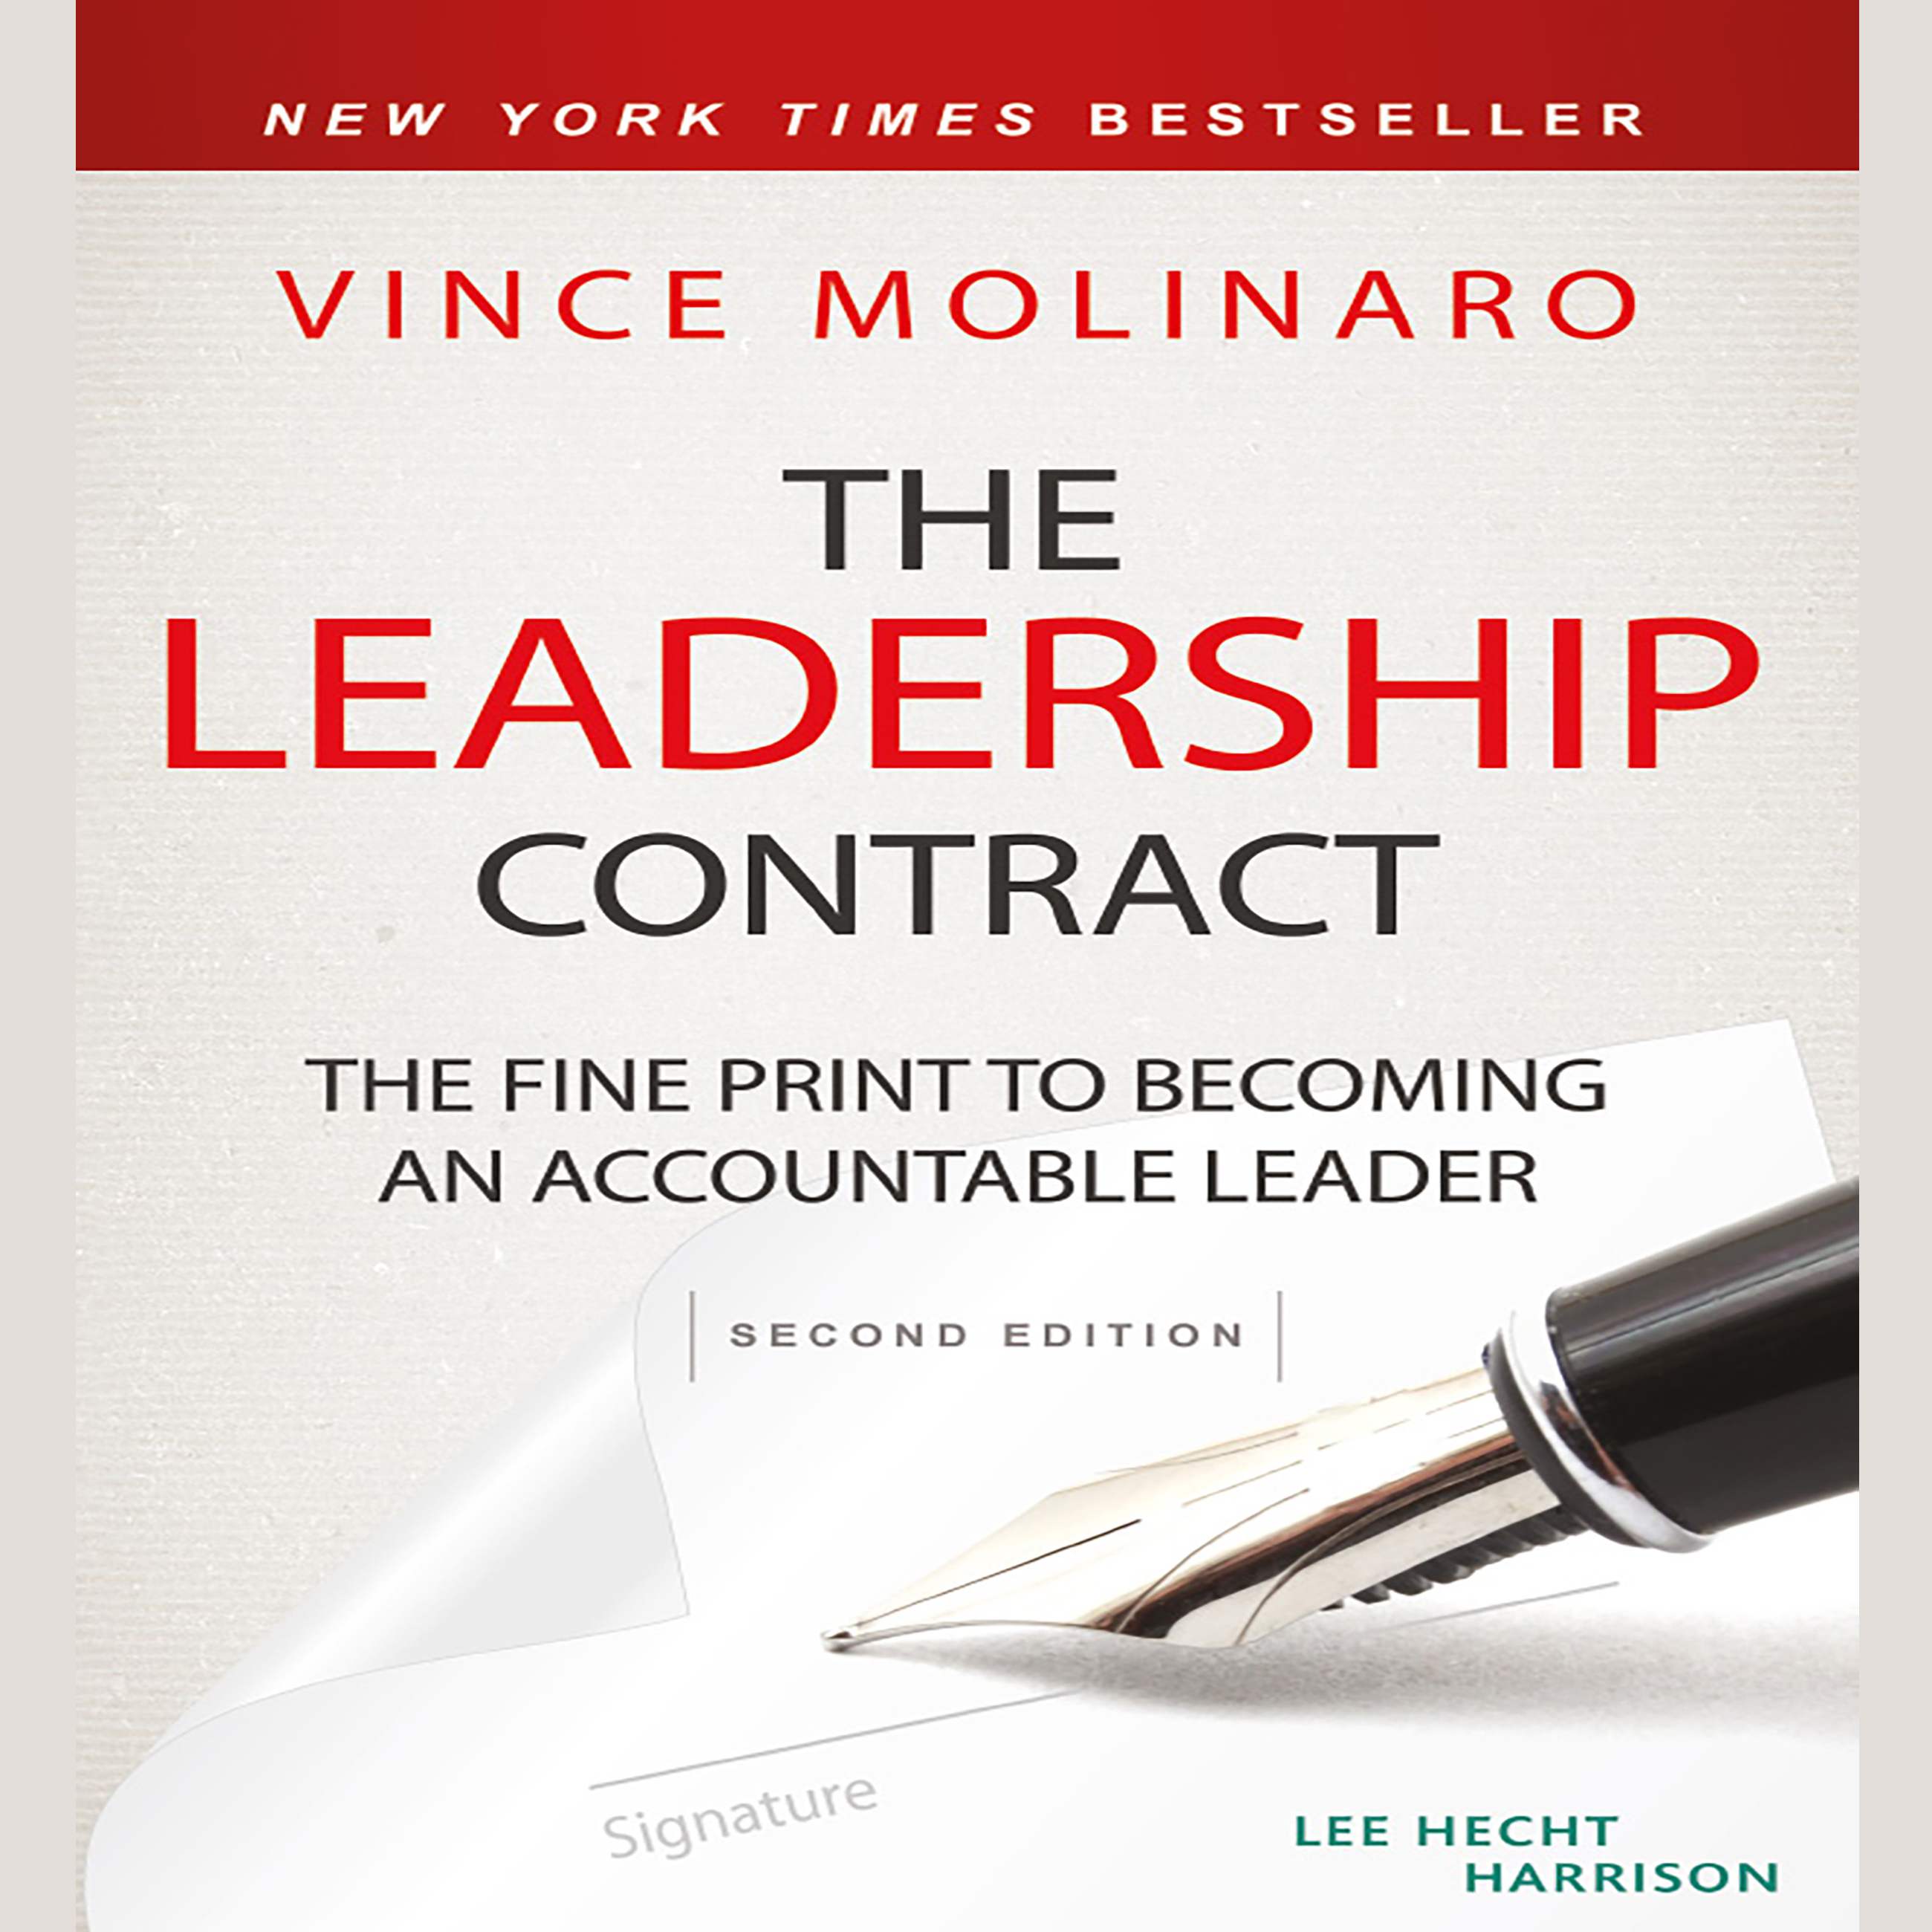 The Leadership Contract: The Fine Print to Becoming an Accountable Leader  Audiobook, by Vince